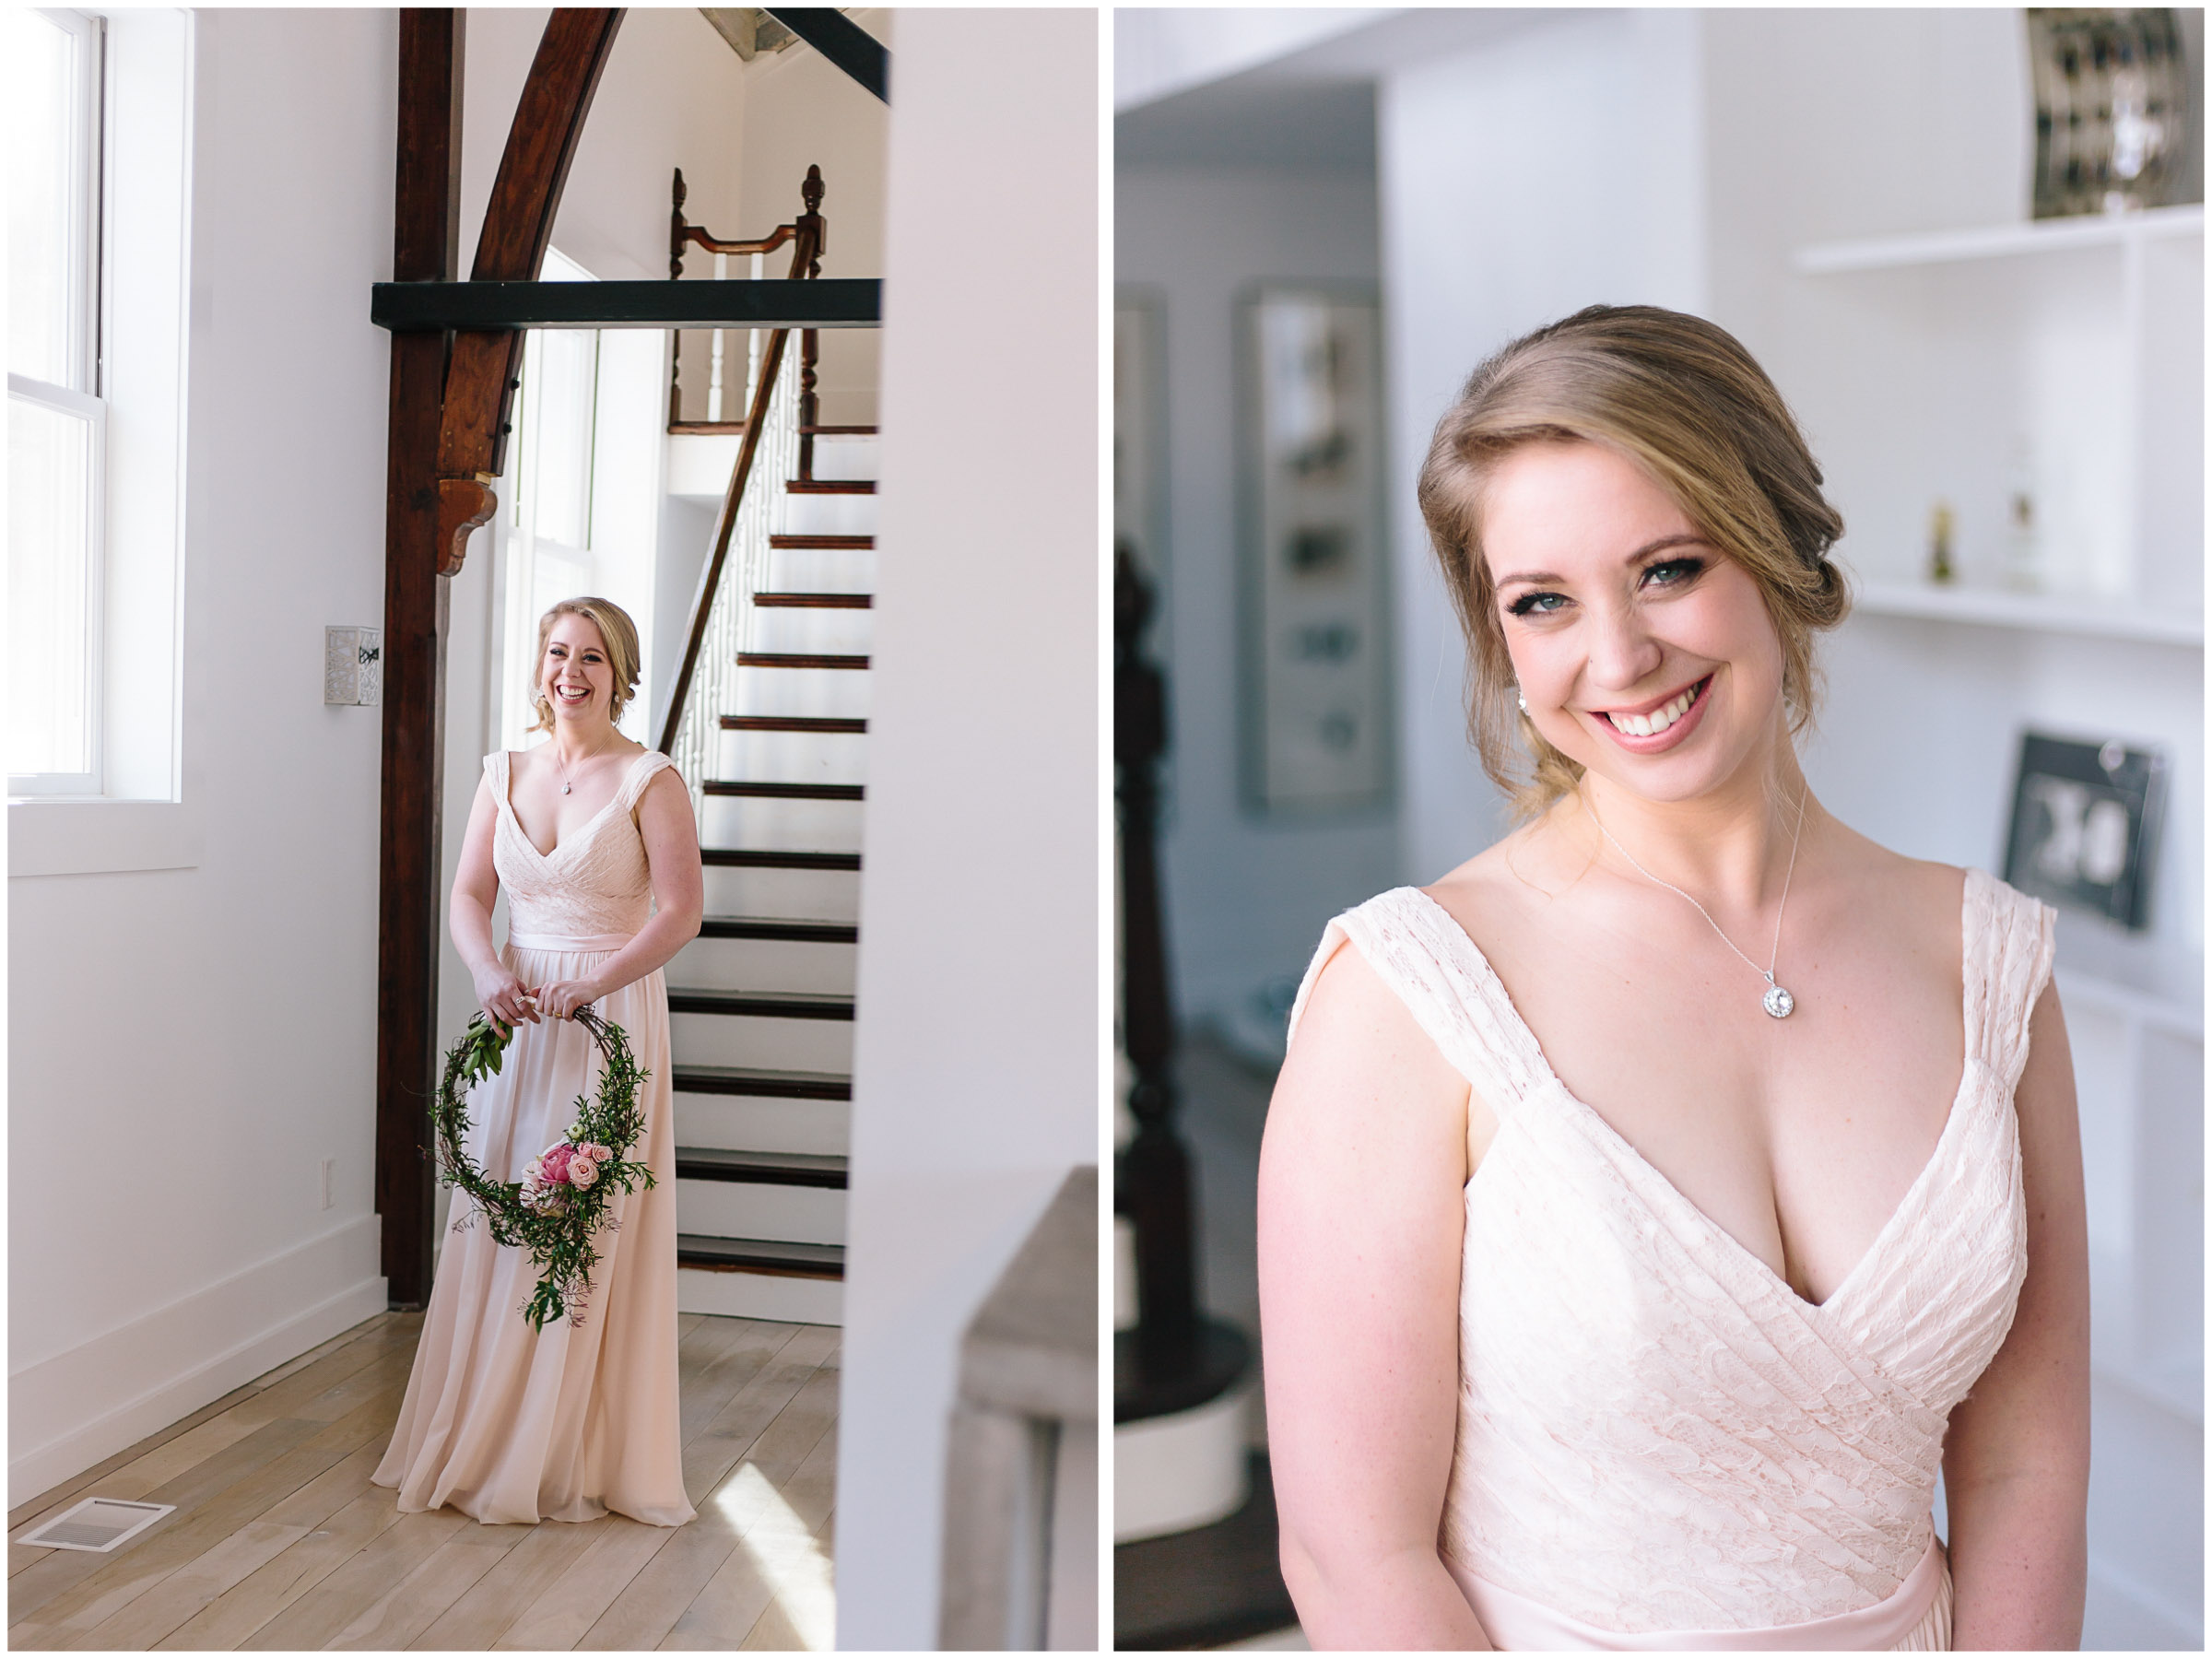 Intimate and romantic styled wedding photography in Lee, Massachusetts in the Berkshires - maid/matron of honor